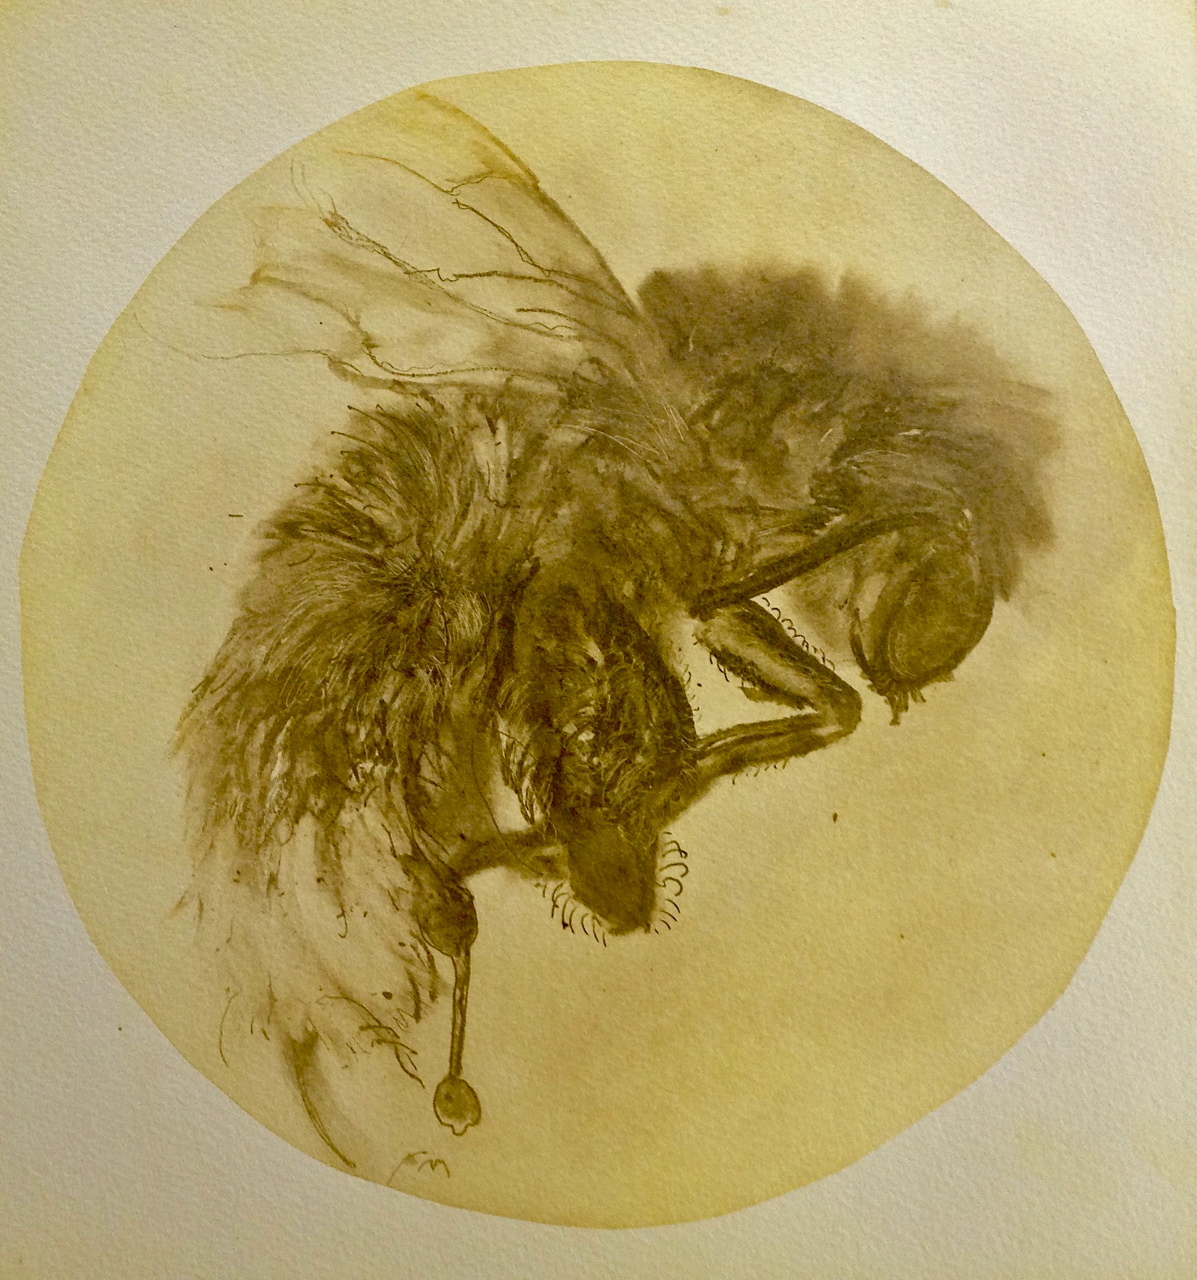 bee etching 1 copy.jpg